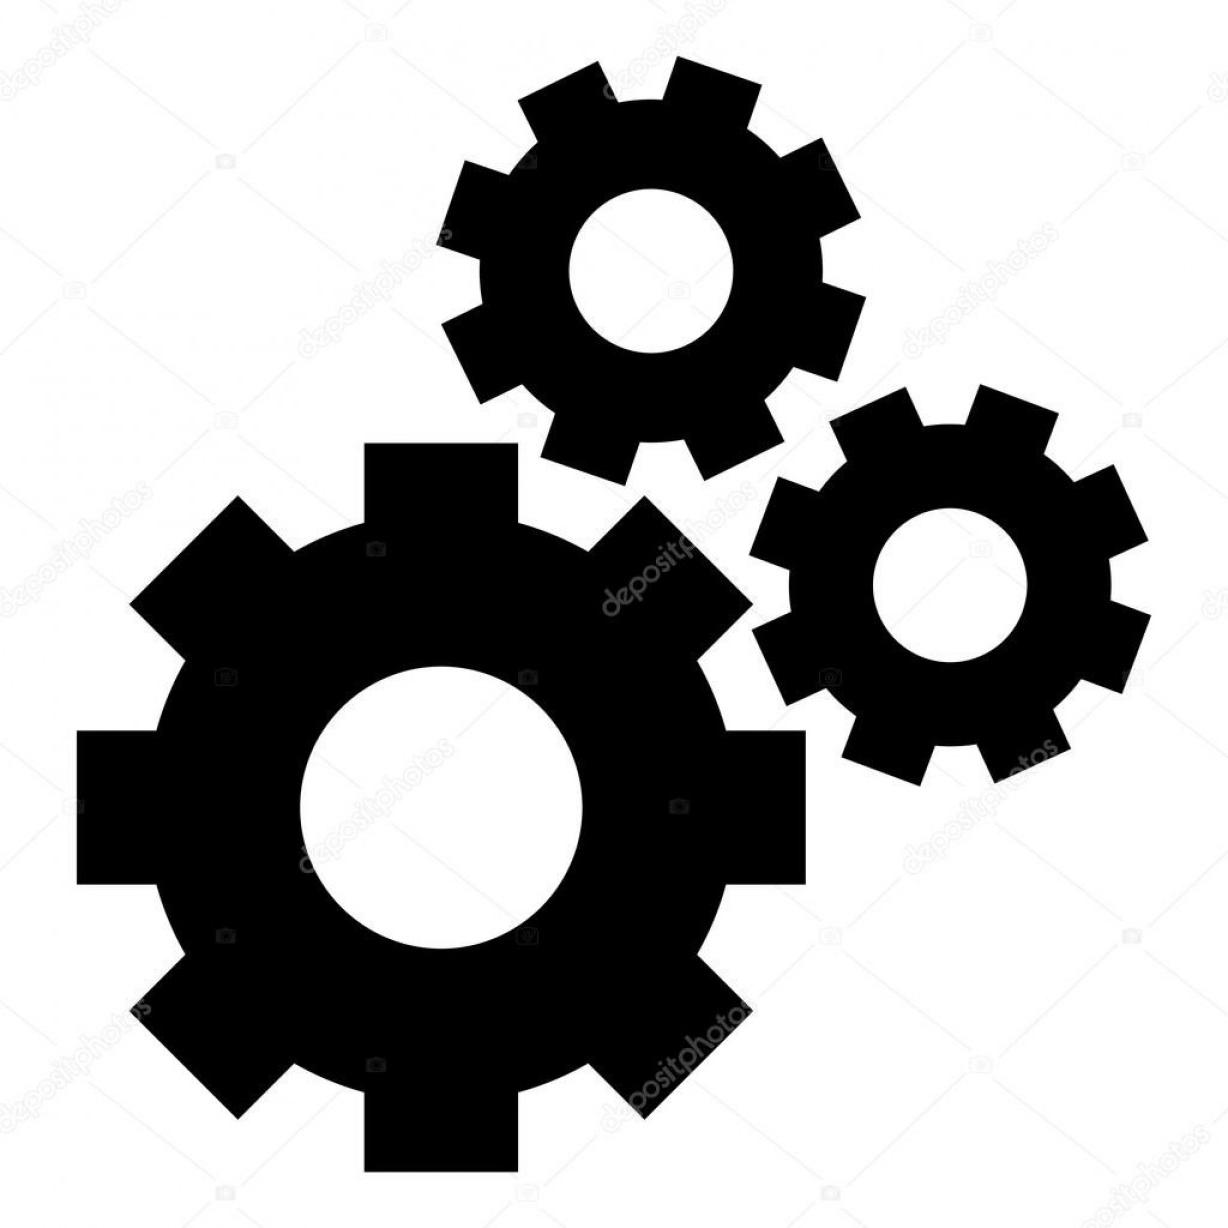 Gear clipart vector banner black and white download HD Gear Vector Art Library » Free Vector Art, Images, Graphics & Clipart banner black and white download